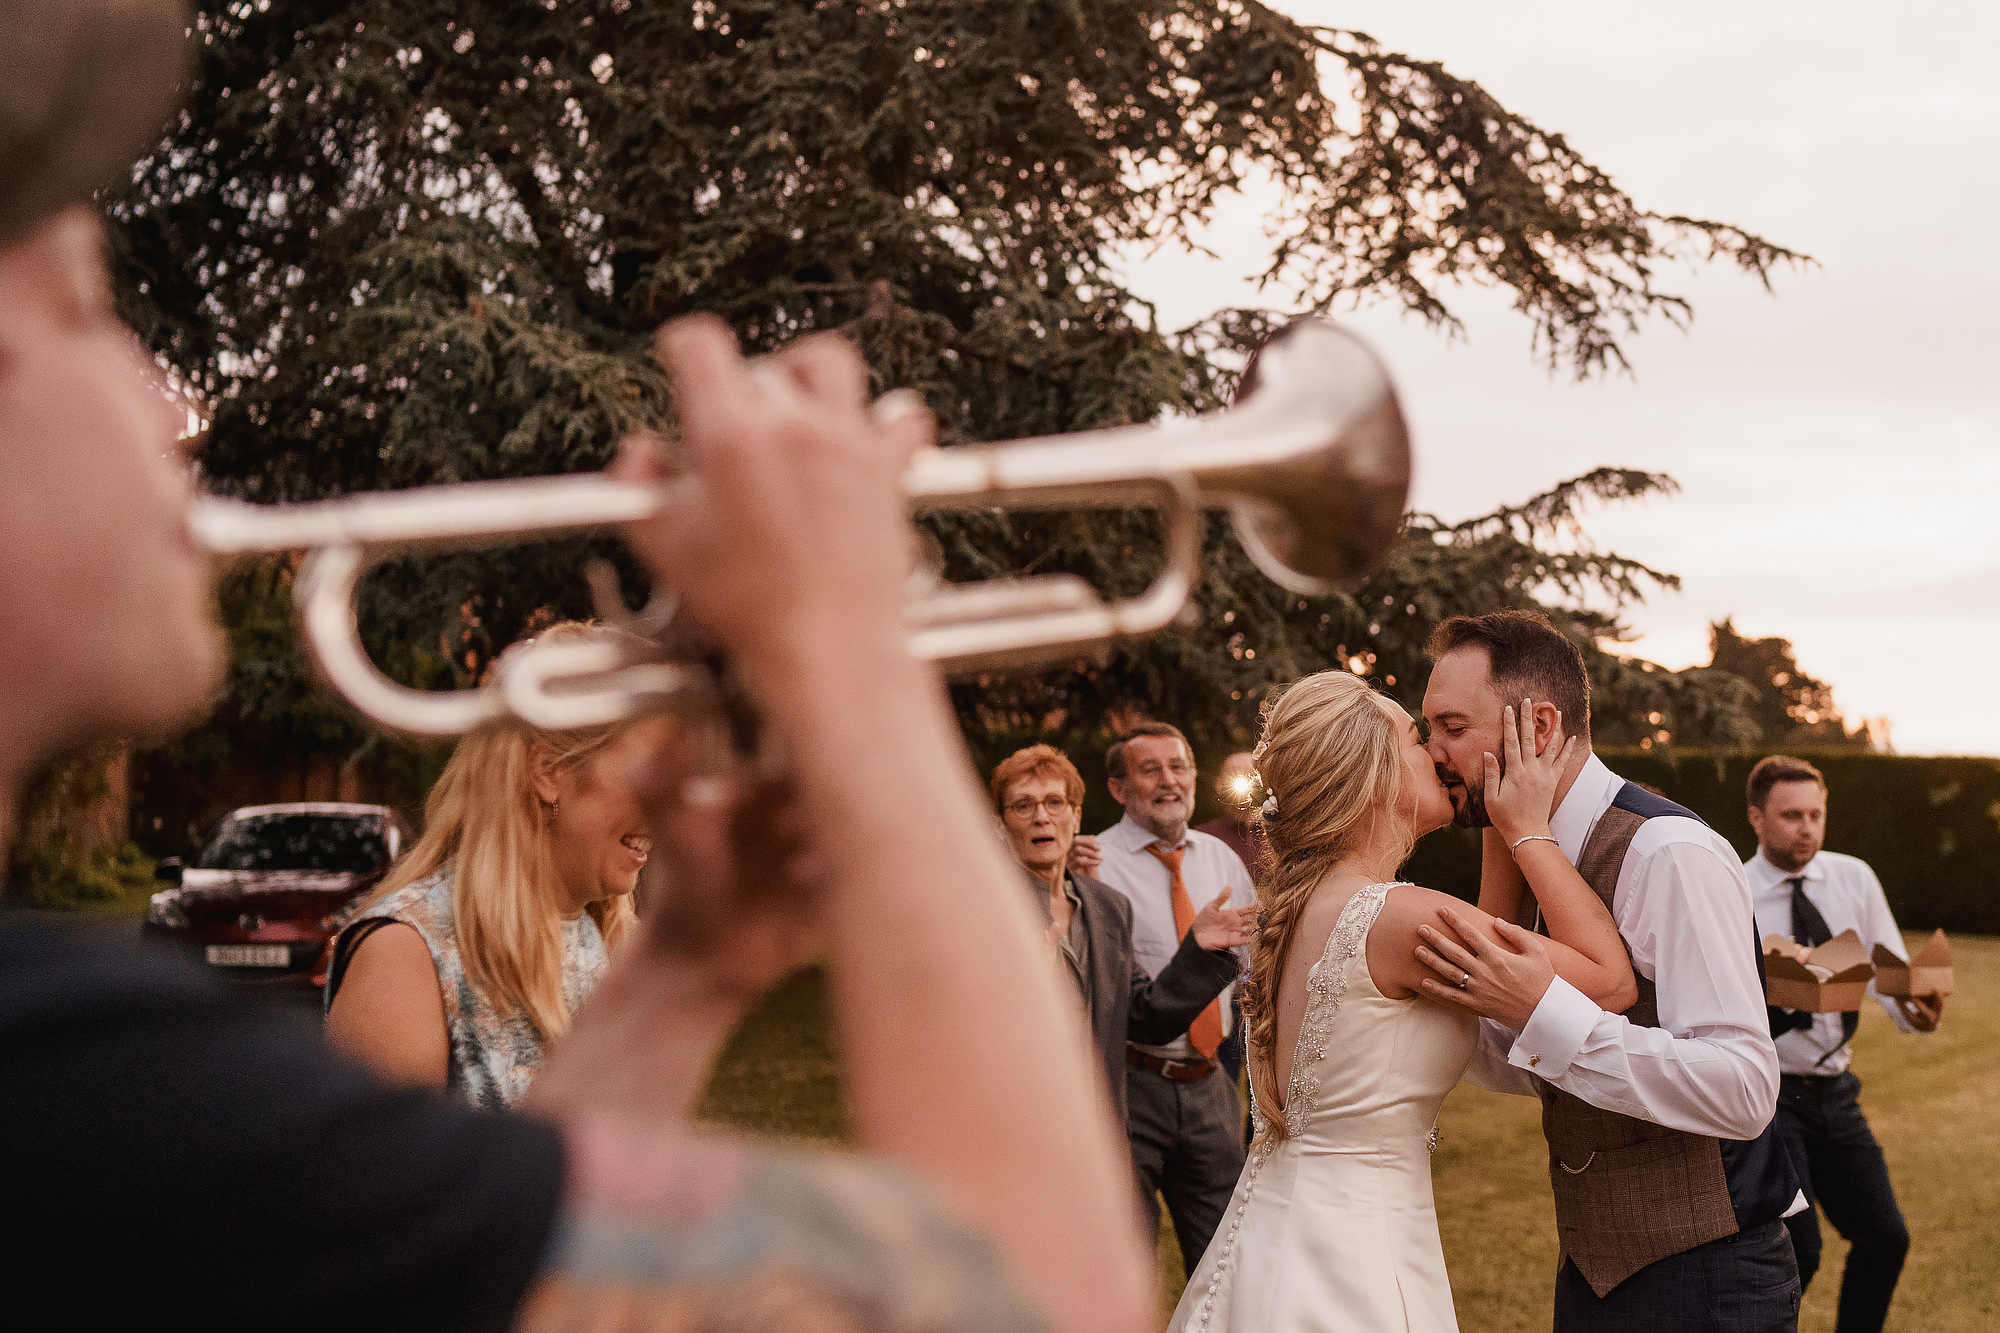 Walcot Hall Summer Wedding - Personality packed documentary wedding photography by ARJ Photography Cheshire